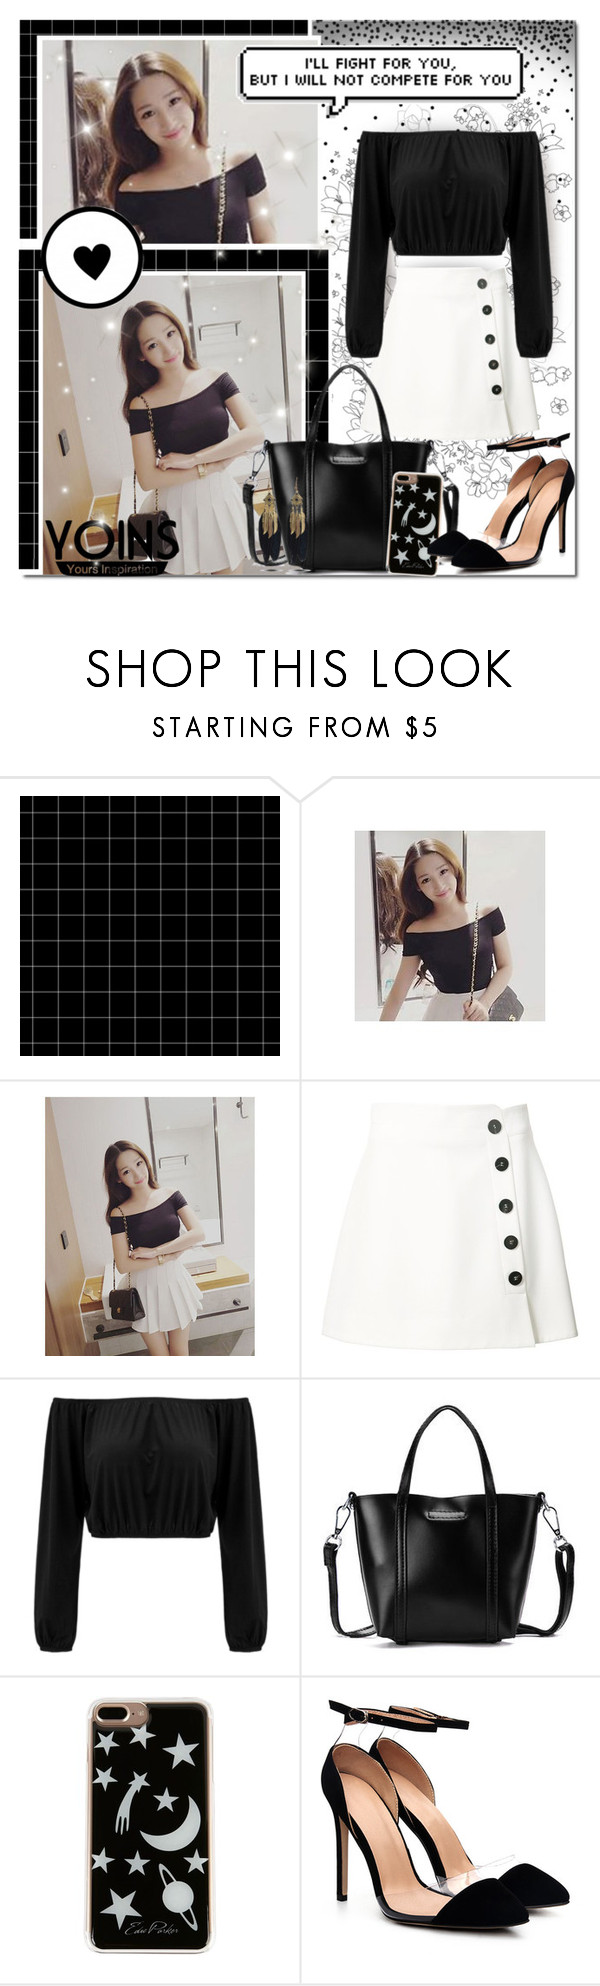 """""""Dark, Classic White Beauty // Yoins"""" by angelstylee ❤ liked on Polyvore featuring Misha Nonoo, Edie Parker, yoins, yoinscollection and loveyoins"""